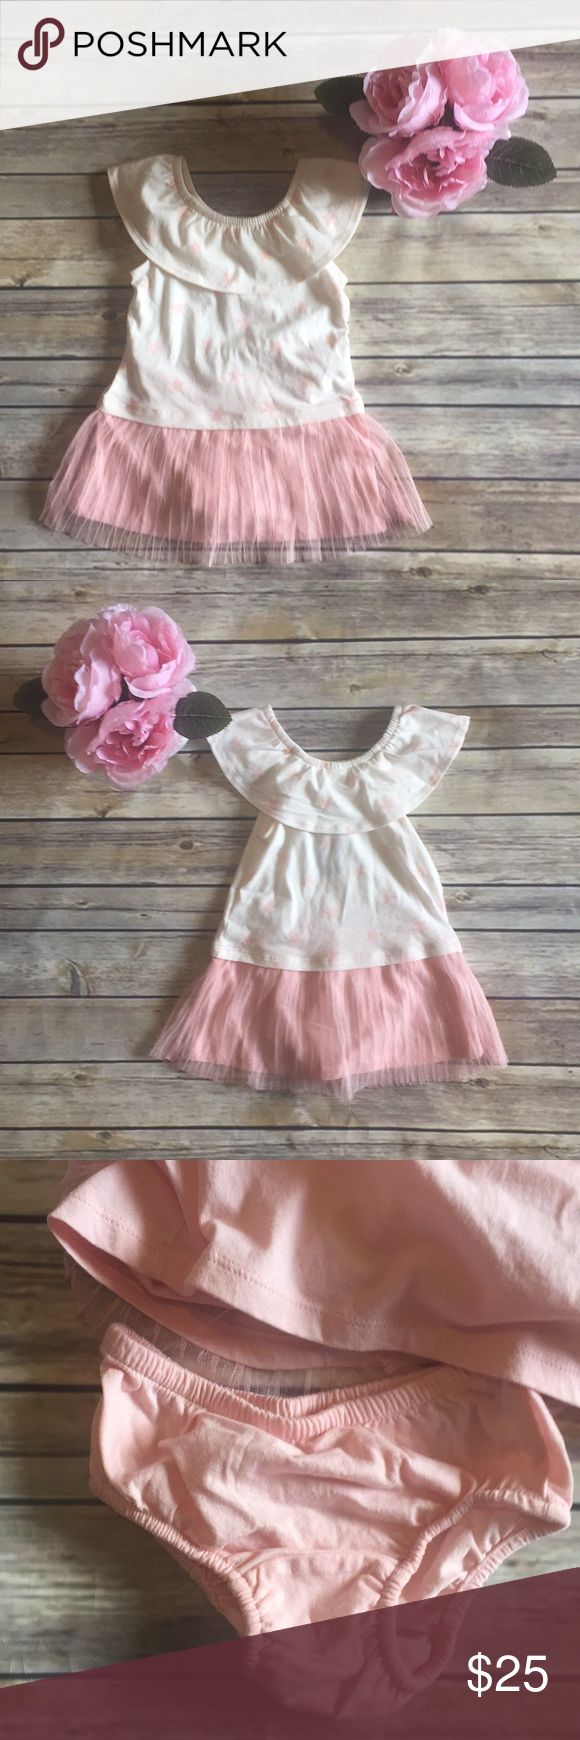 NWT Baby Gap dress NWT Baby Gap dress with bloomers in size 12-18 months.  Actual tag is missing, but bloomers are still attached with plastic, so listed as NWT.  Adorable star print on cream top with beautiful blush pink tulle over cotton.  Very soft and comfortable for baby!  Pet/smoke free home. GAP Dresses